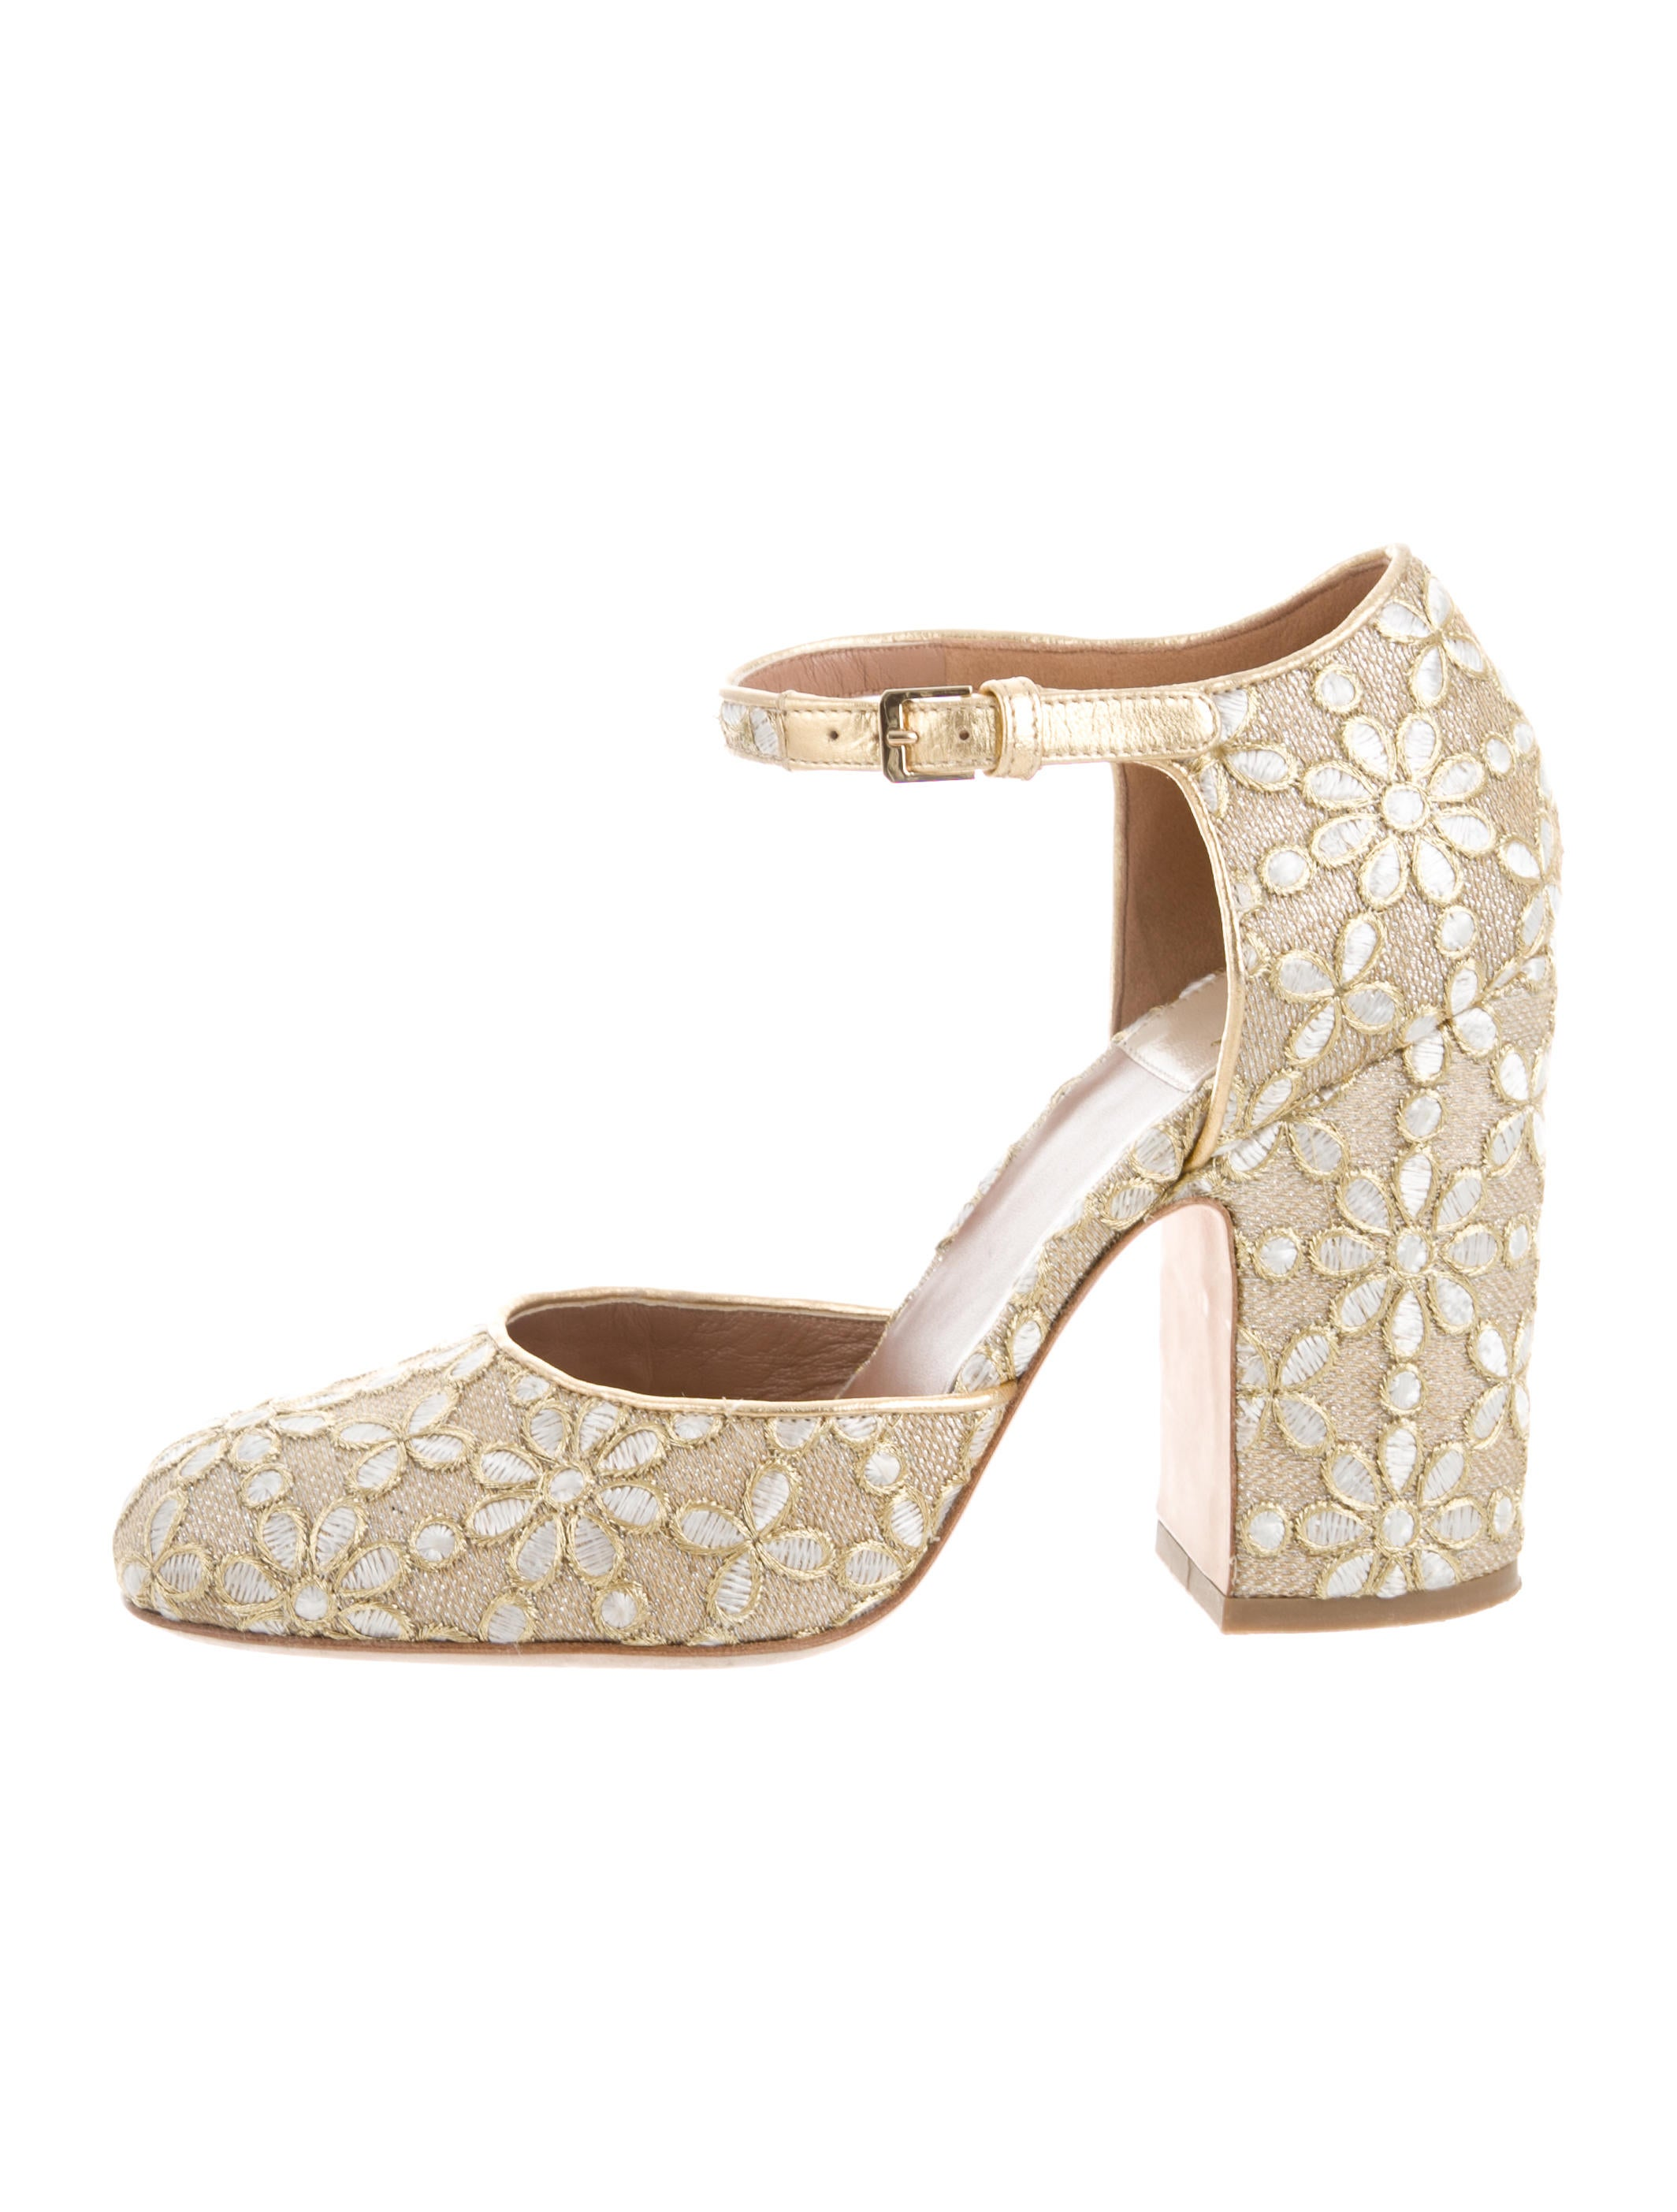 Laurence Dacade Mindy Embroidered Pumps cheap sale very cheap l3dyZnBn